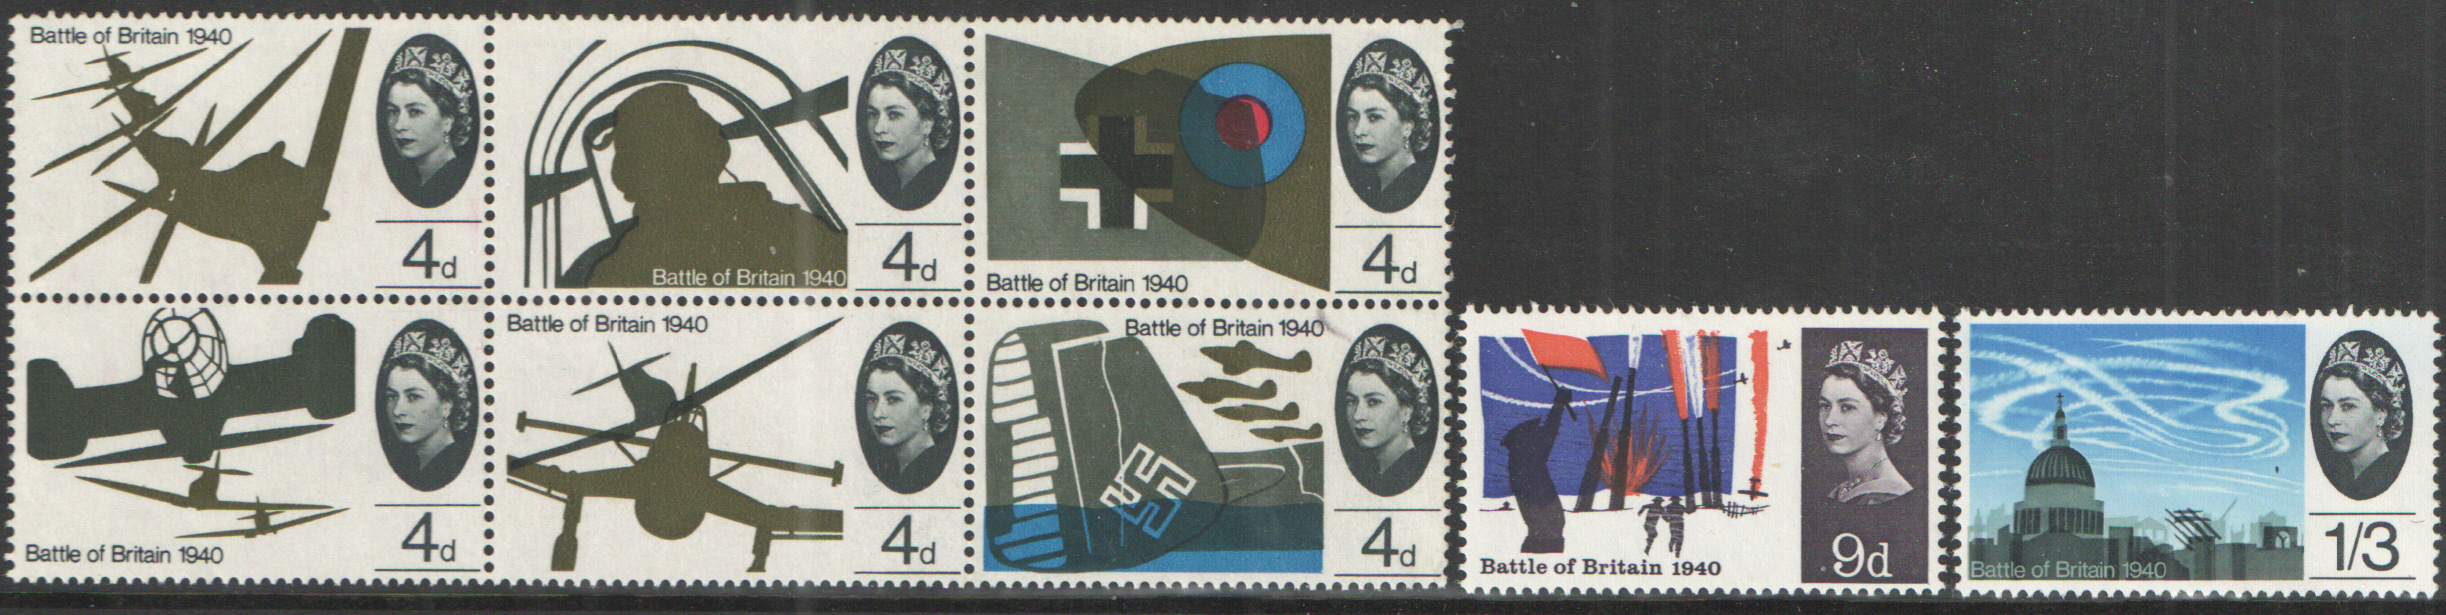 SG671 / 678 1965 Battle of Britain (Ordinary) unmounted mint set of 8